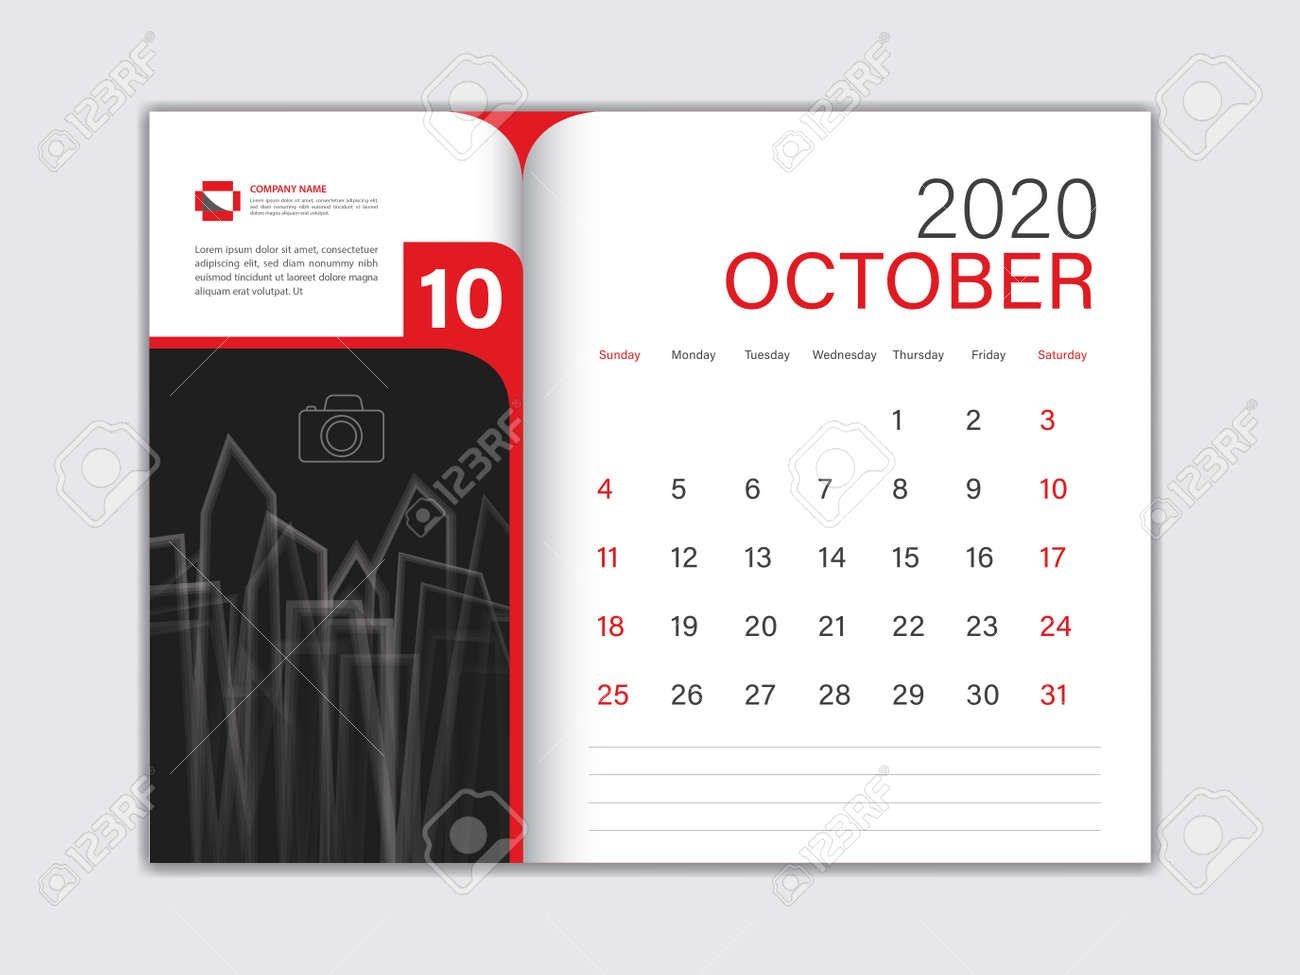 Calendar 2020 Design Vector, Desk Calendar 2020 Template, October,